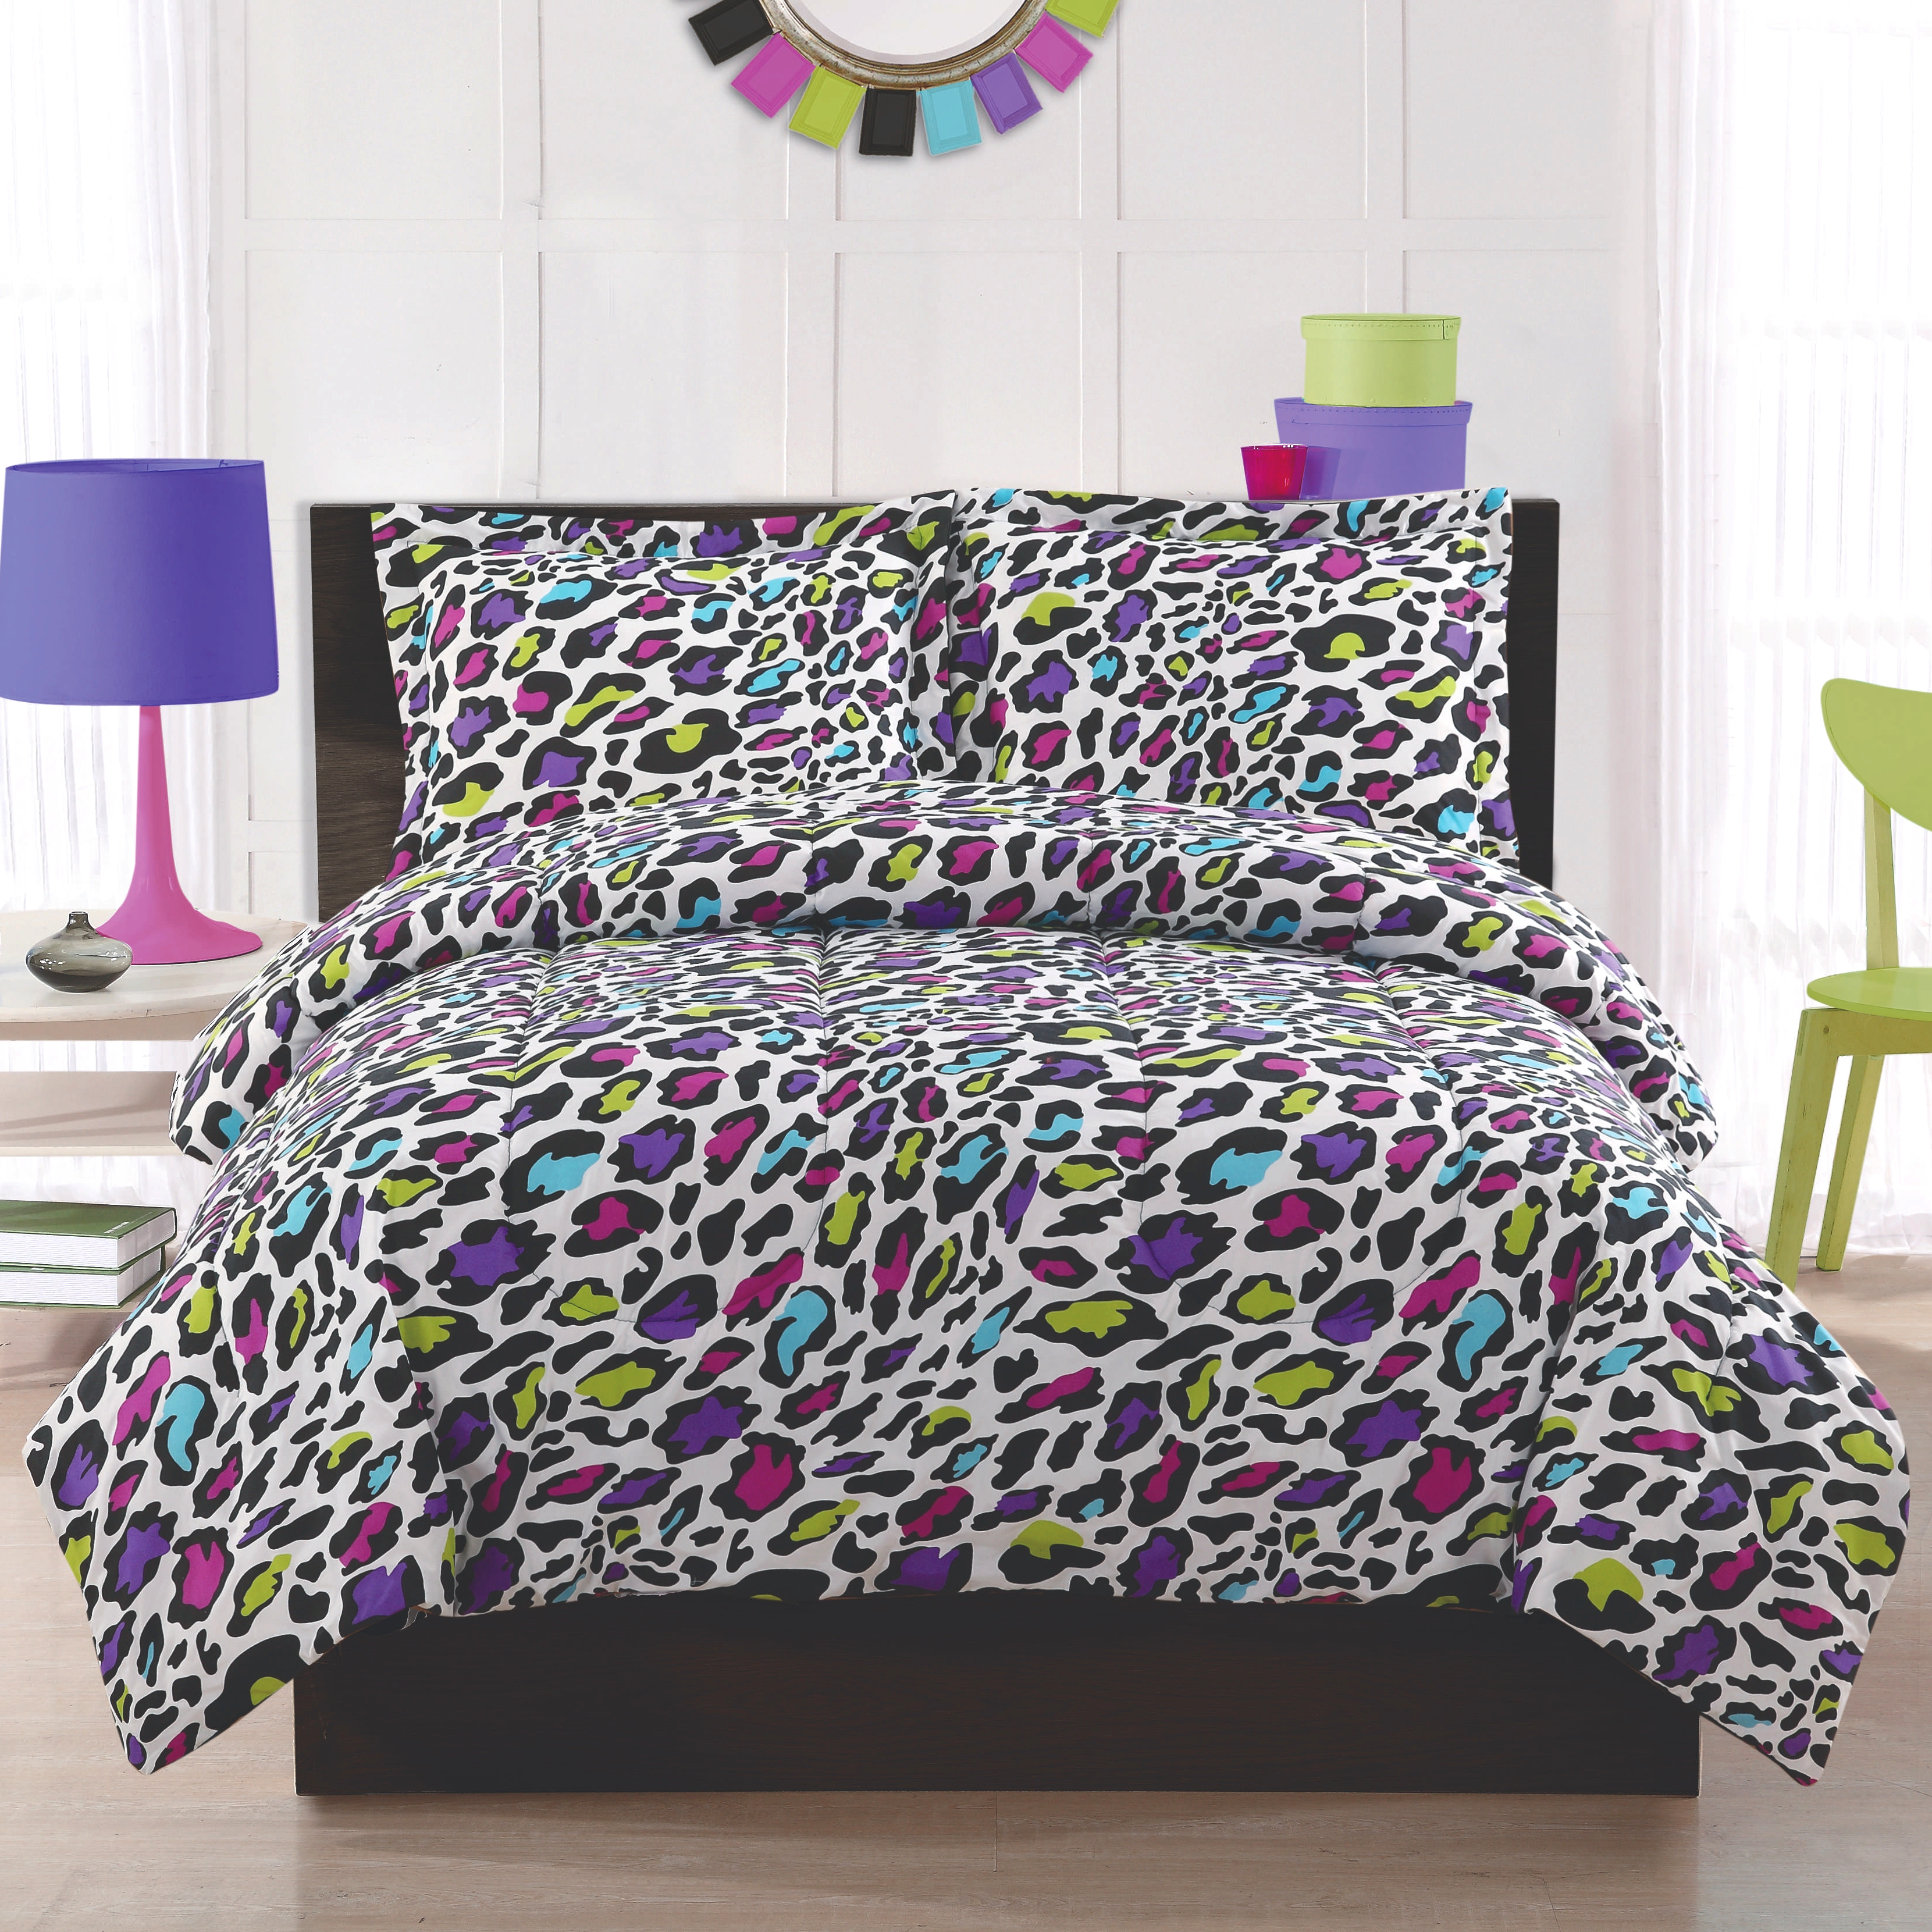 rainbow cheetah bedding photo - 2